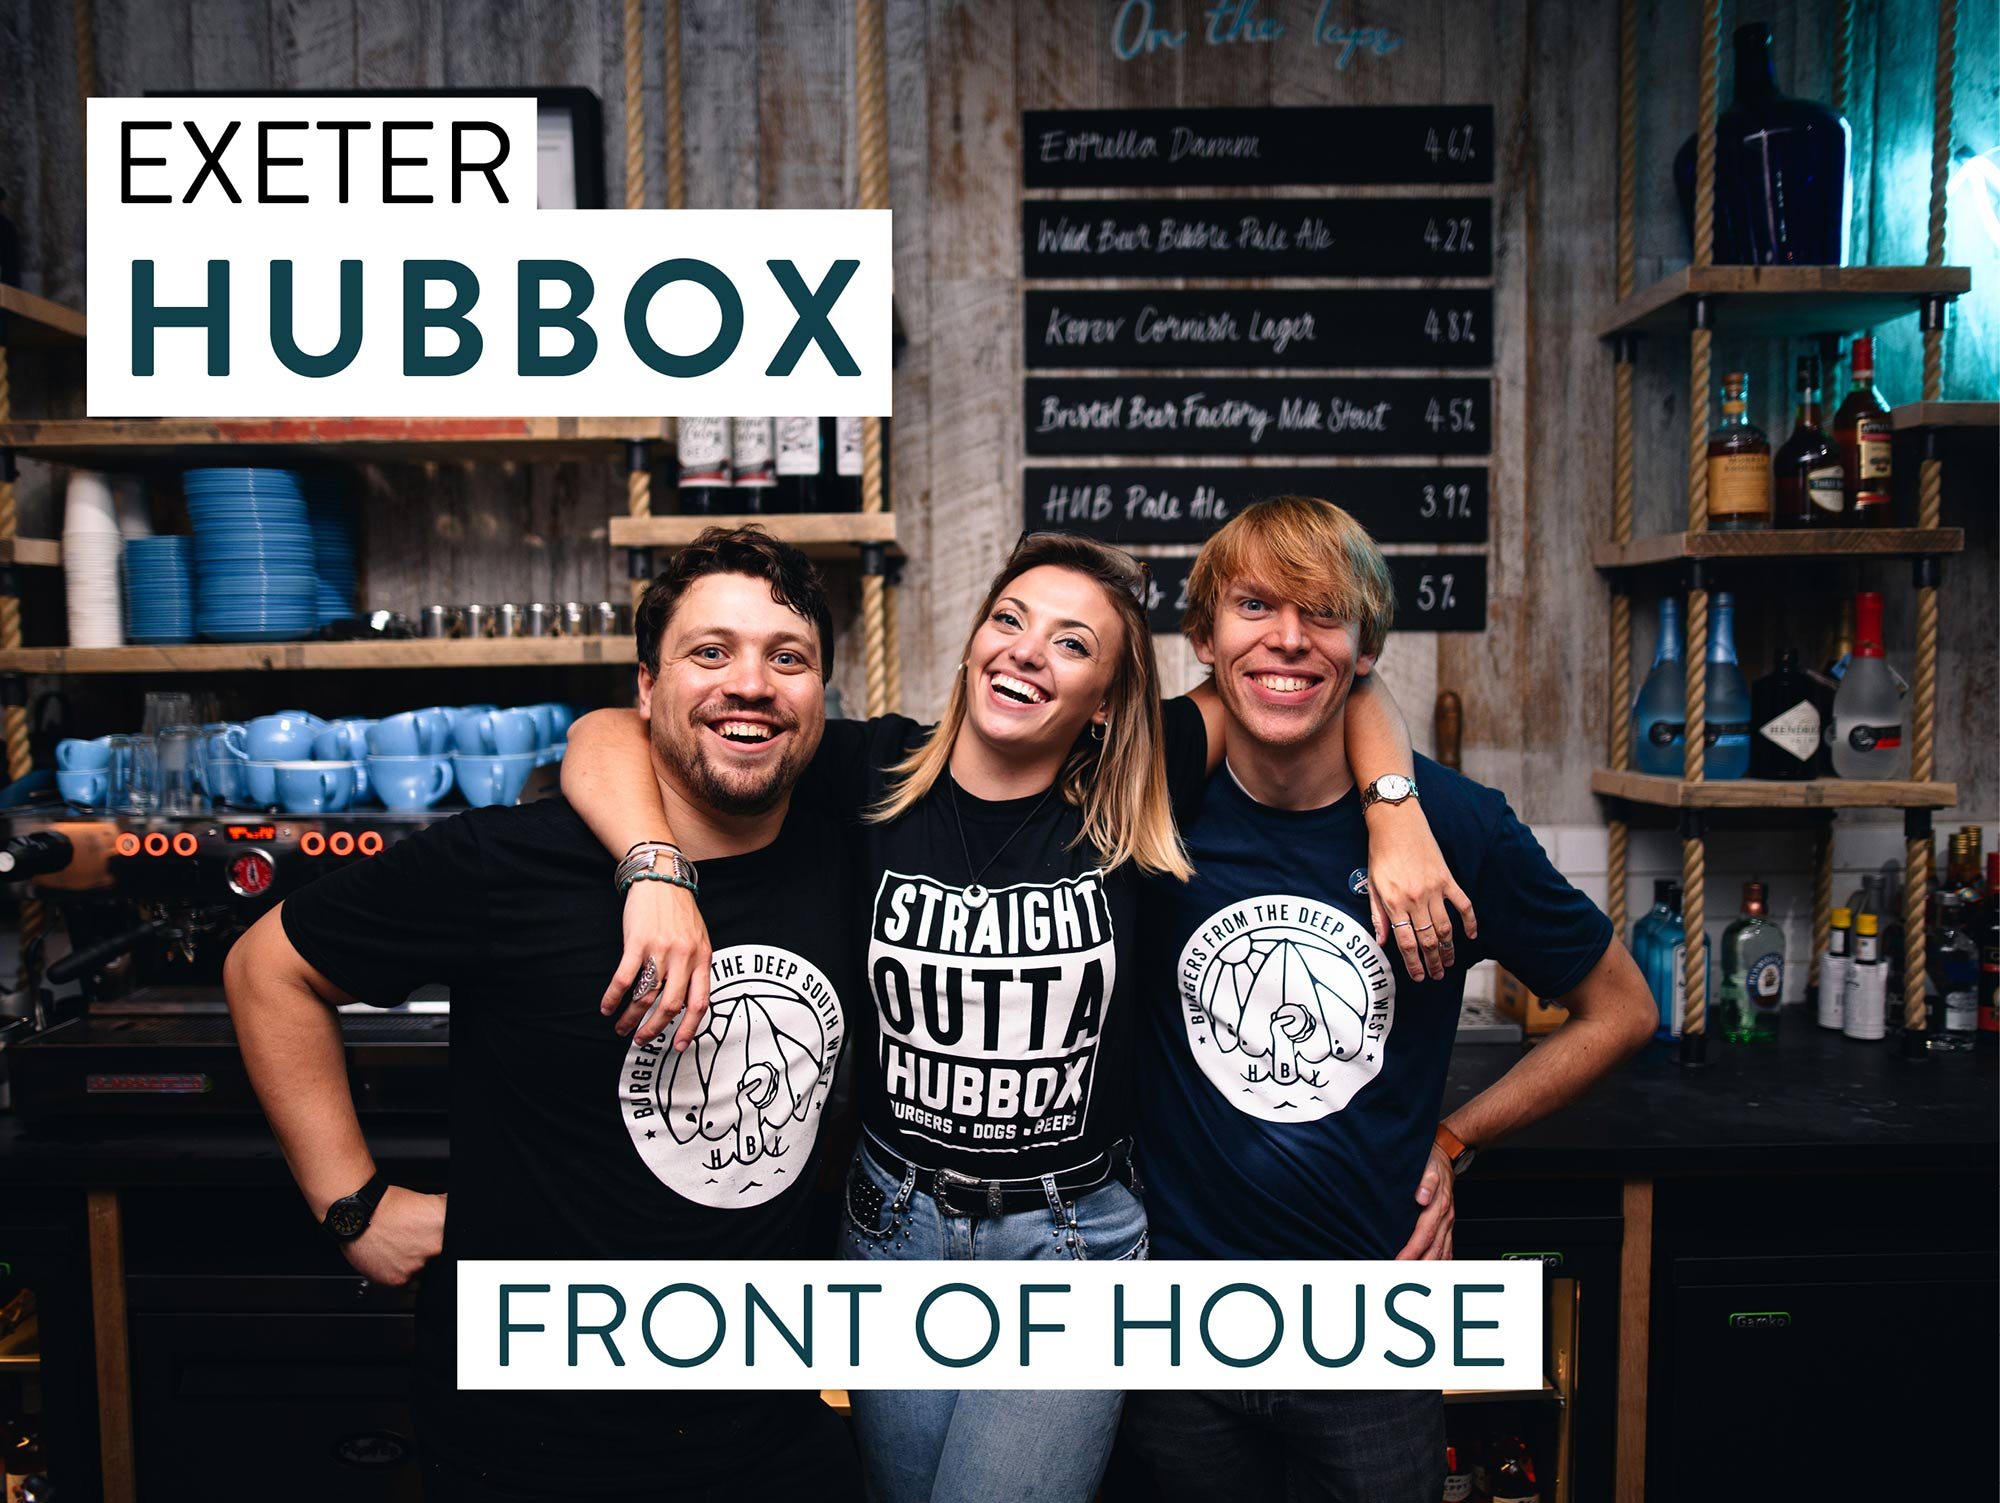 Hubbox Exeter recruitment front of house